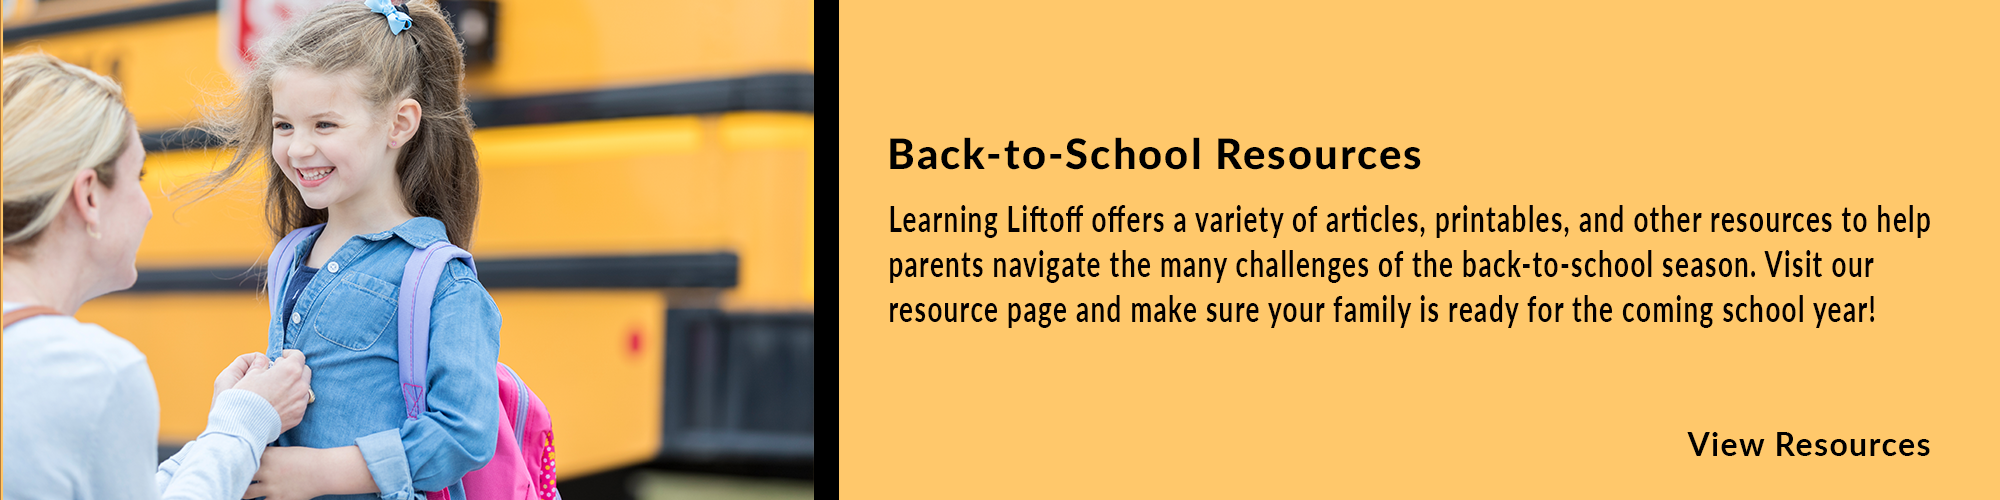 child by bus back-to-school promo